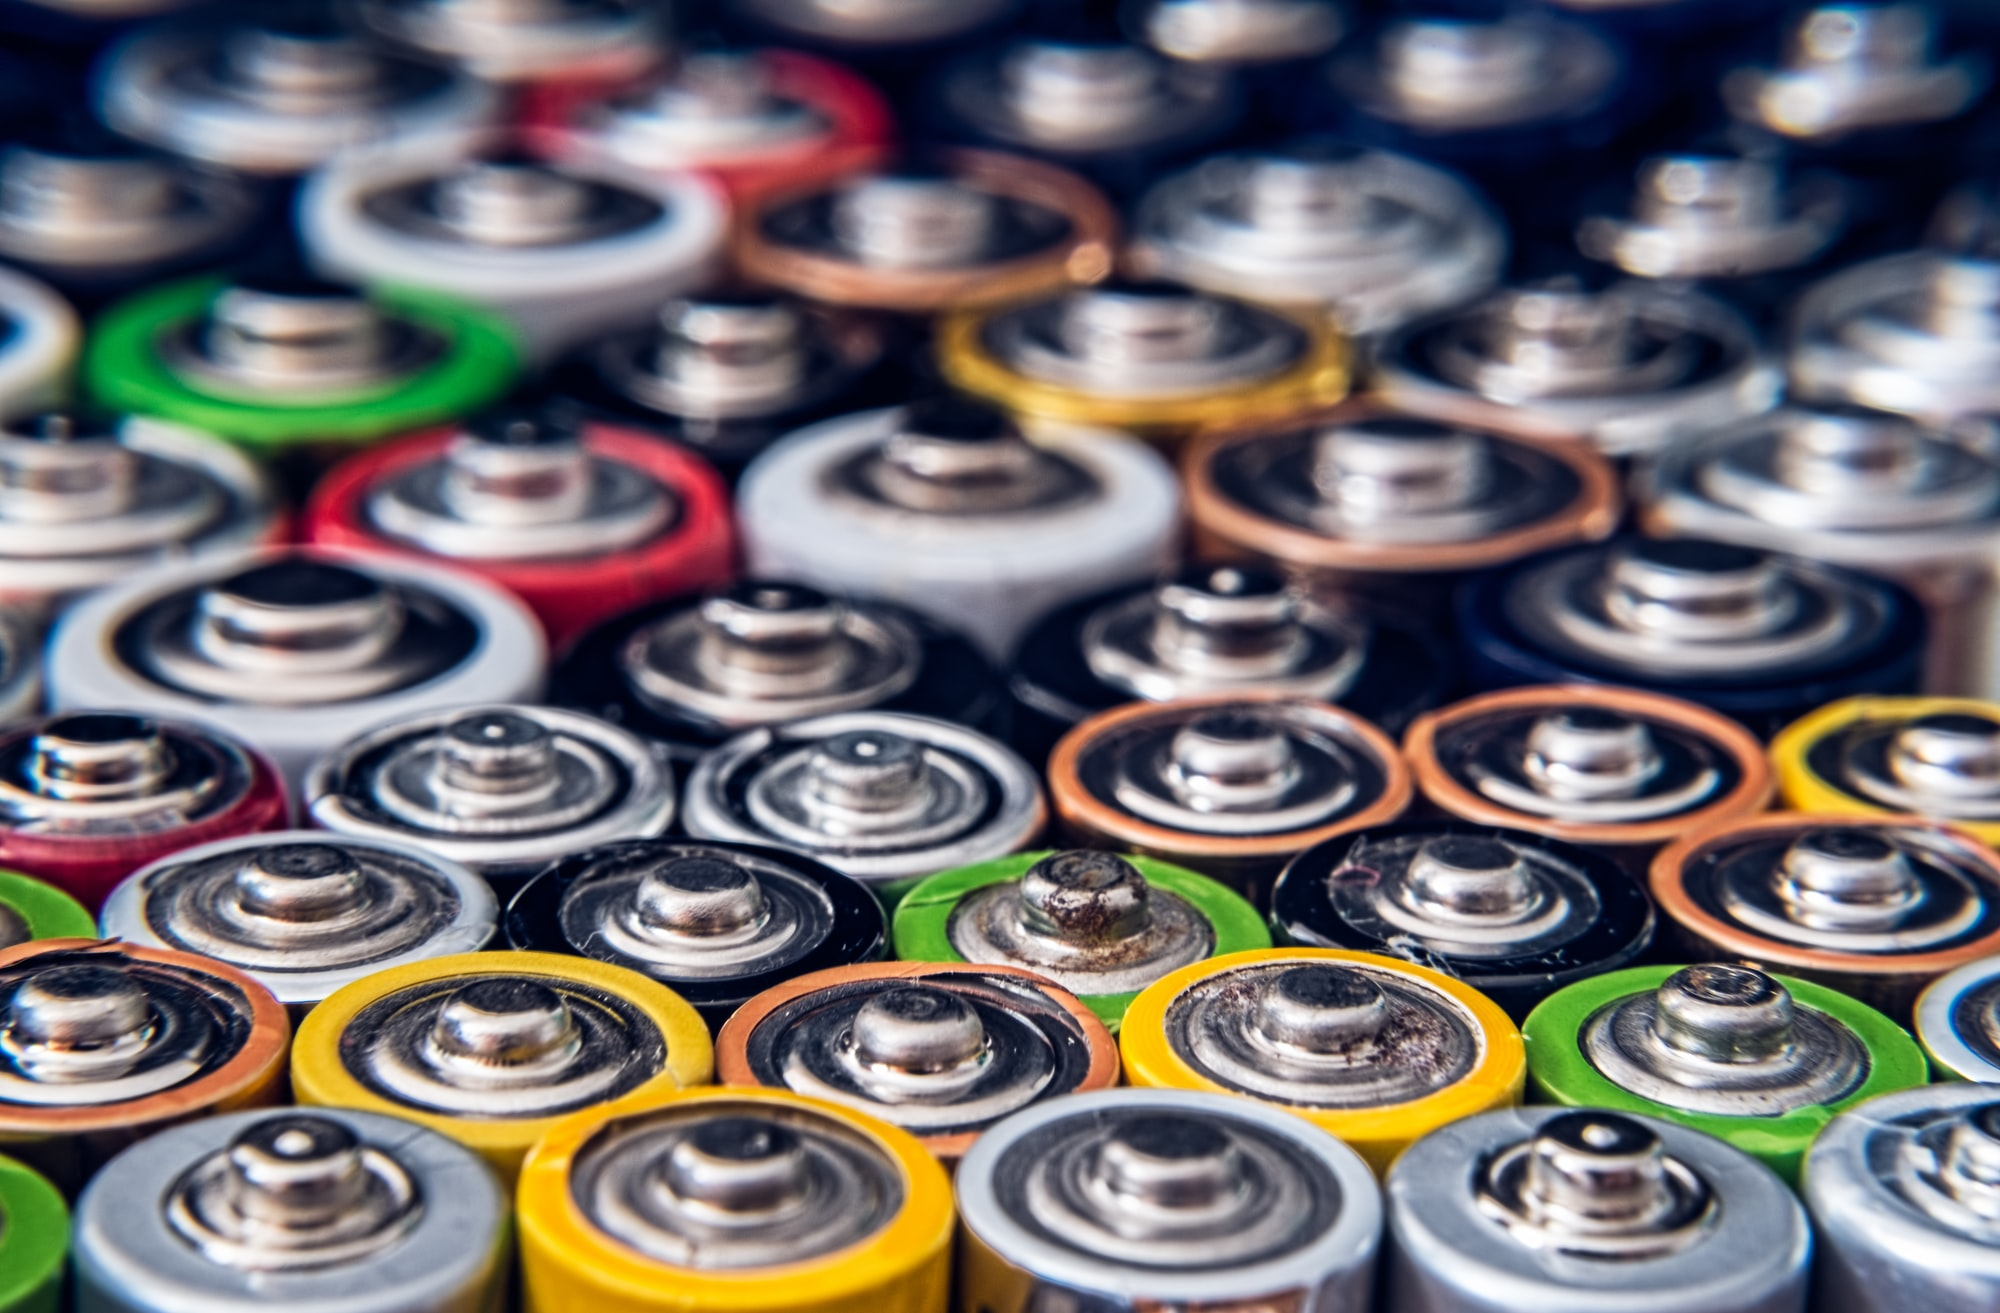 Batteries: The trend that's about to explode